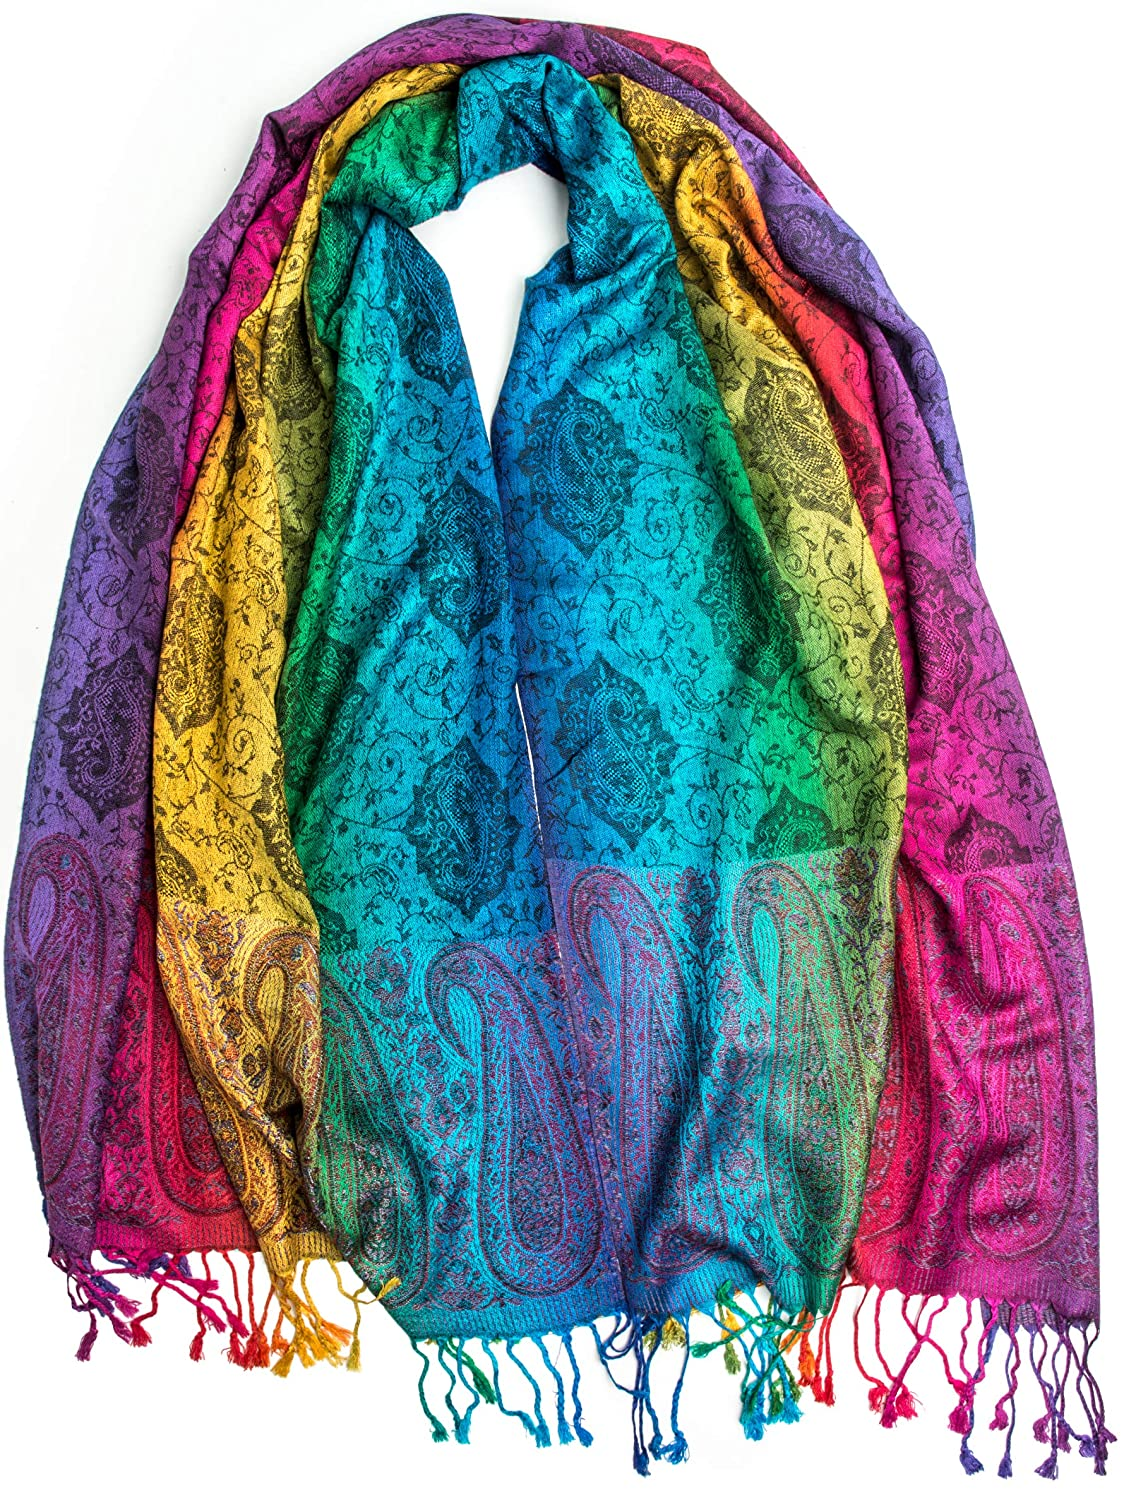 70s Jackets, Furs, Vests, Ponchos Iris Rainbow Pashmina Real Silk and Pashmina Indian Paisley Traditional Jacquard Brocade Scarf or Shawl $31.95 AT vintagedancer.com